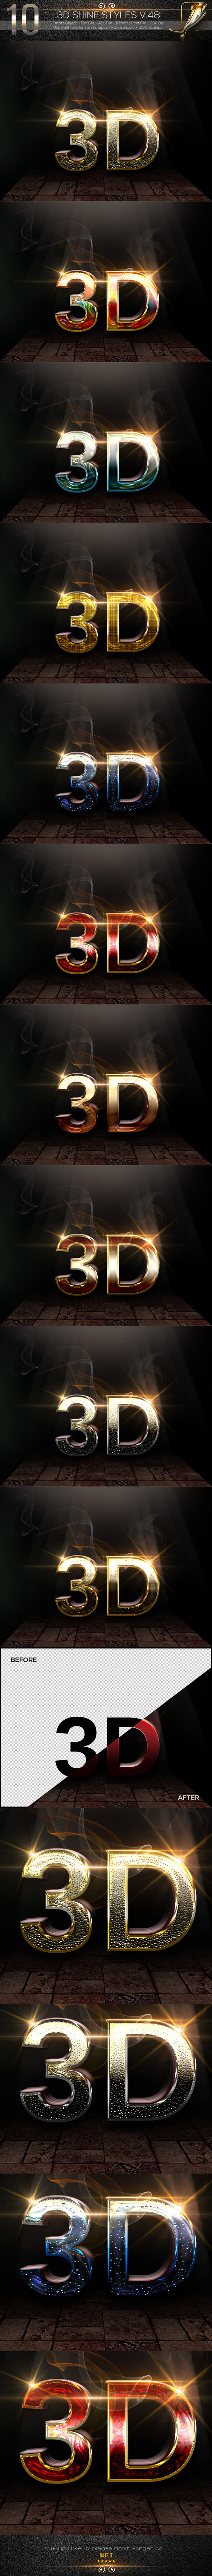 10 3D Text Style V.48 - Text Effects Styles